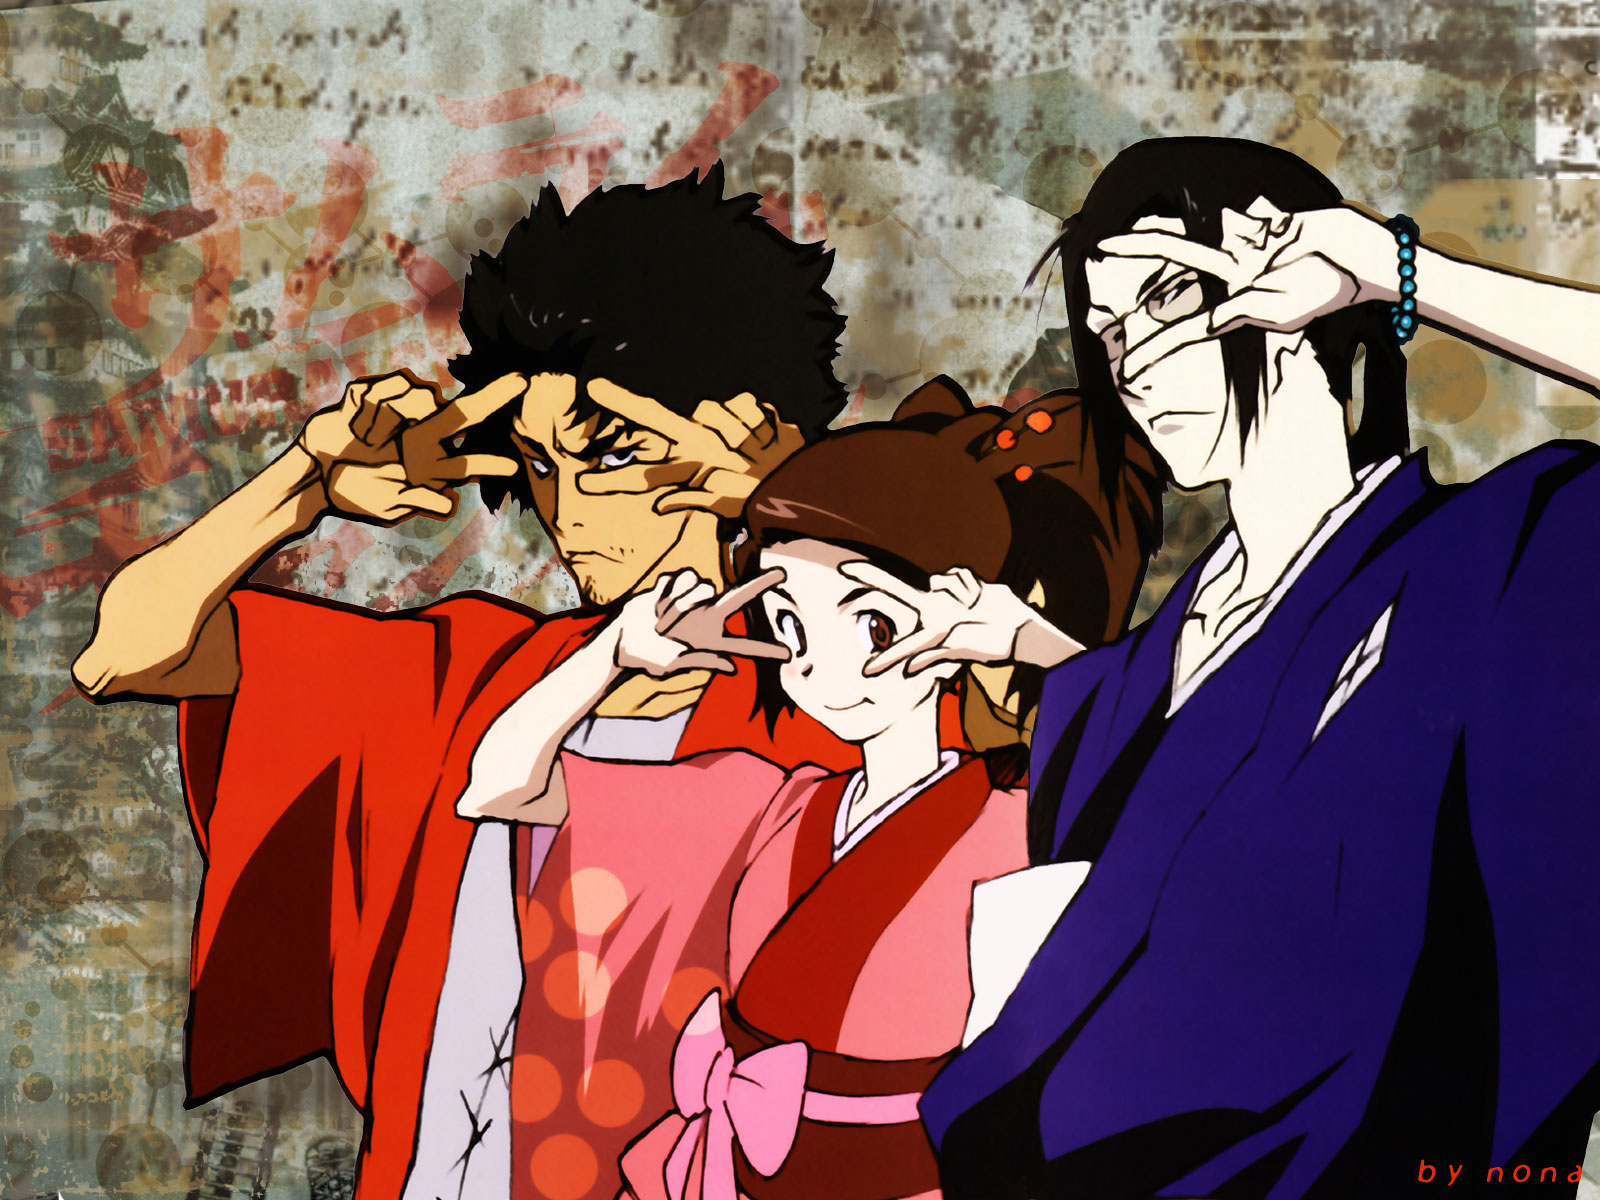 Samurai Champloo Wallpapers Anime Hq Samurai Champloo Pictures 4k Wallpapers 2019